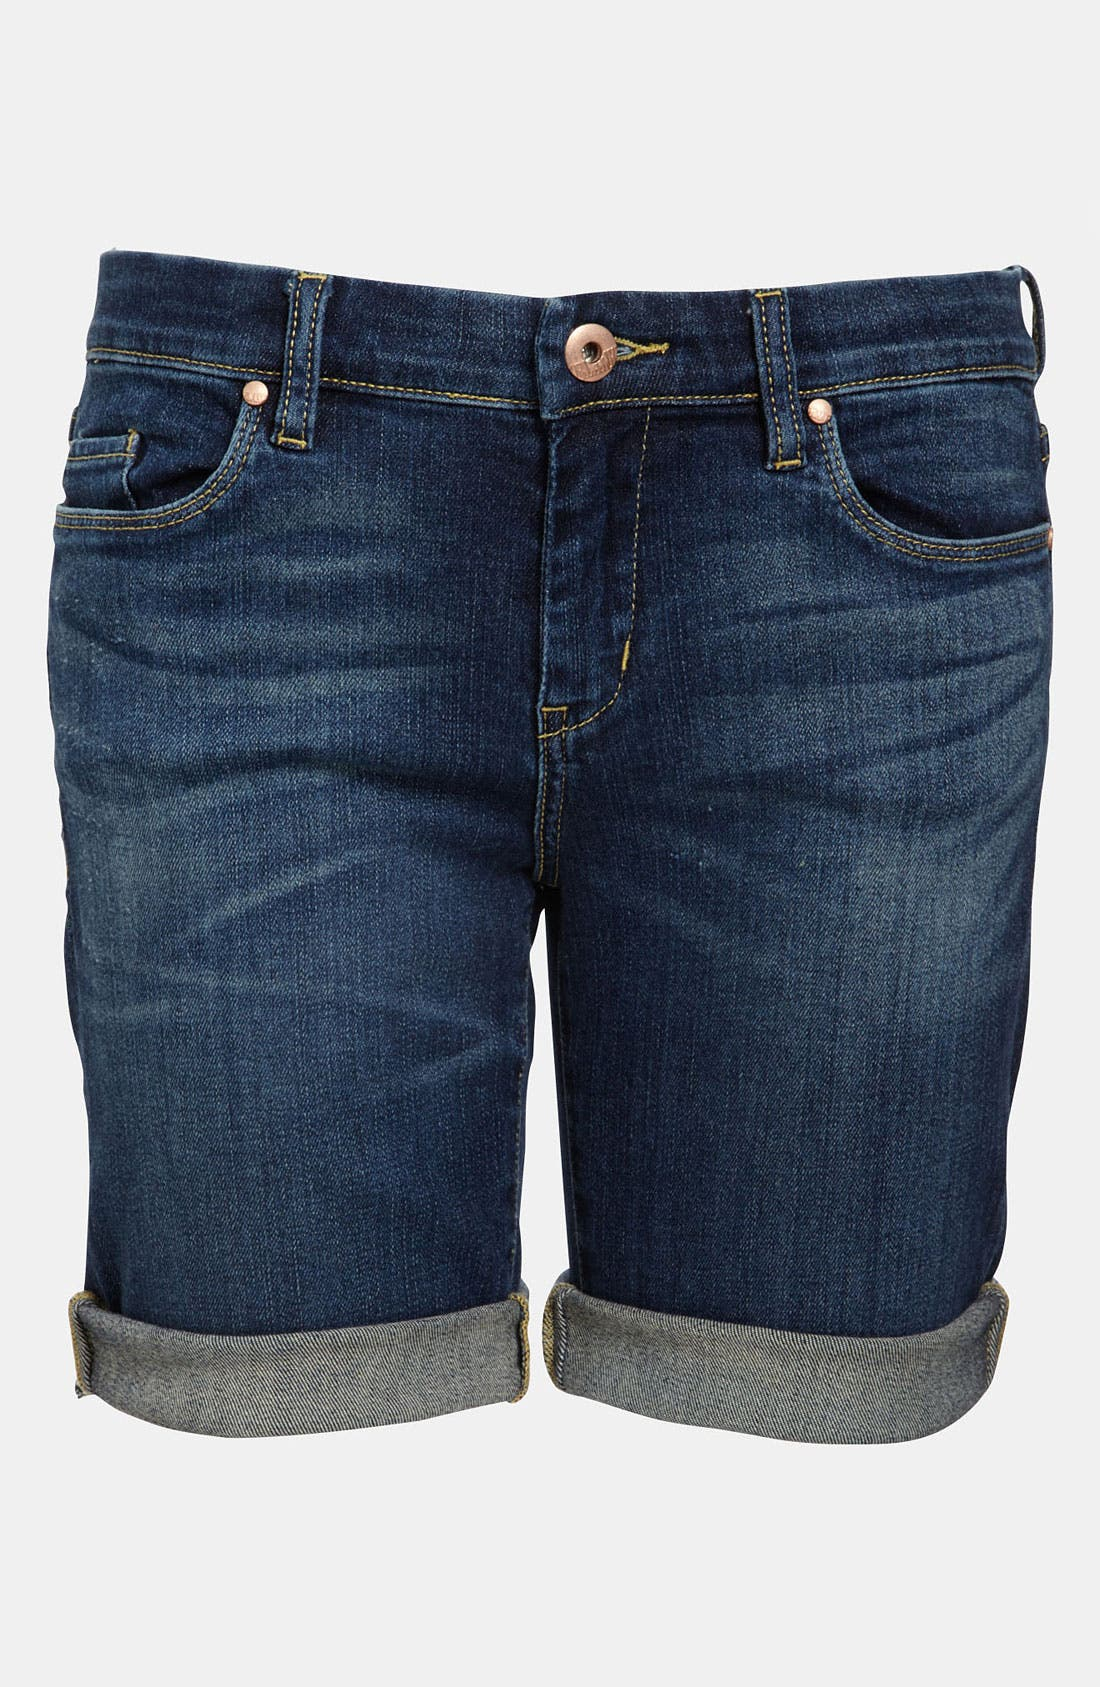 Alternate Image 1 Selected - BLANKNYC 'Roll Up' Jean Shorts